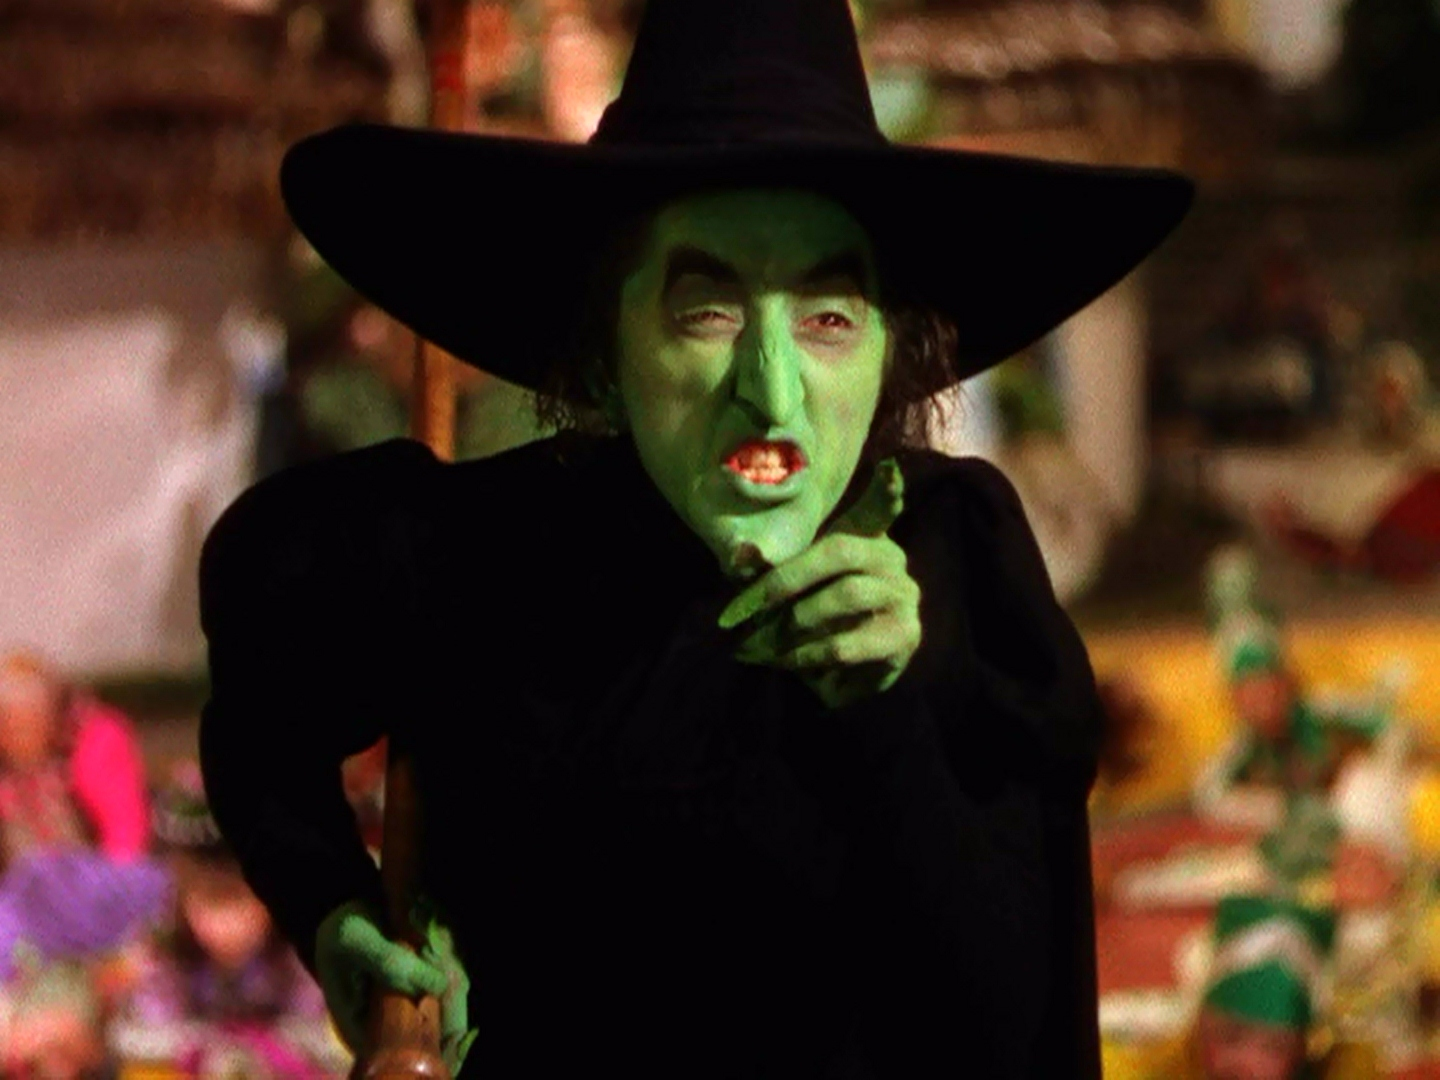 https://vignette2.wikia.nocookie.net/villains/images/8/8f/Wicked_witch.jpg/revision/latest?cb=20120630143955